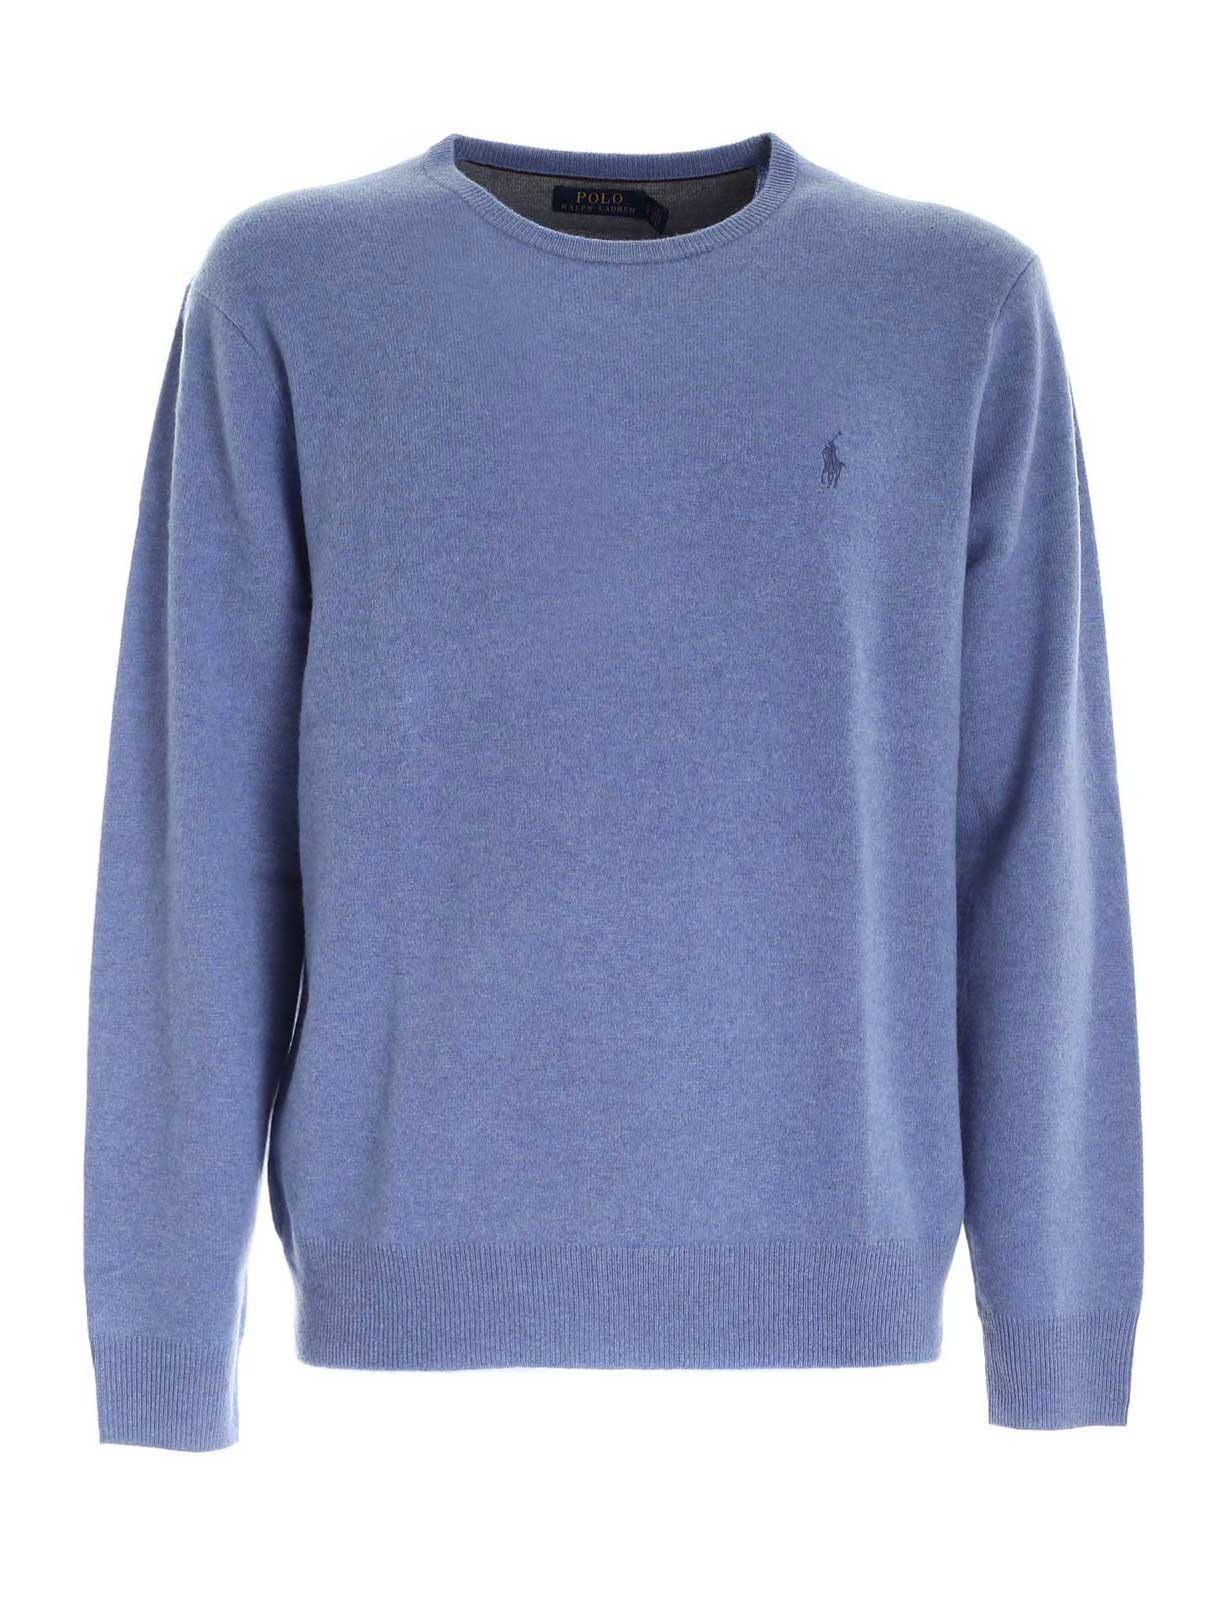 Picture of POLO RALPH LAUREN | Men's Merino Wool Pullover